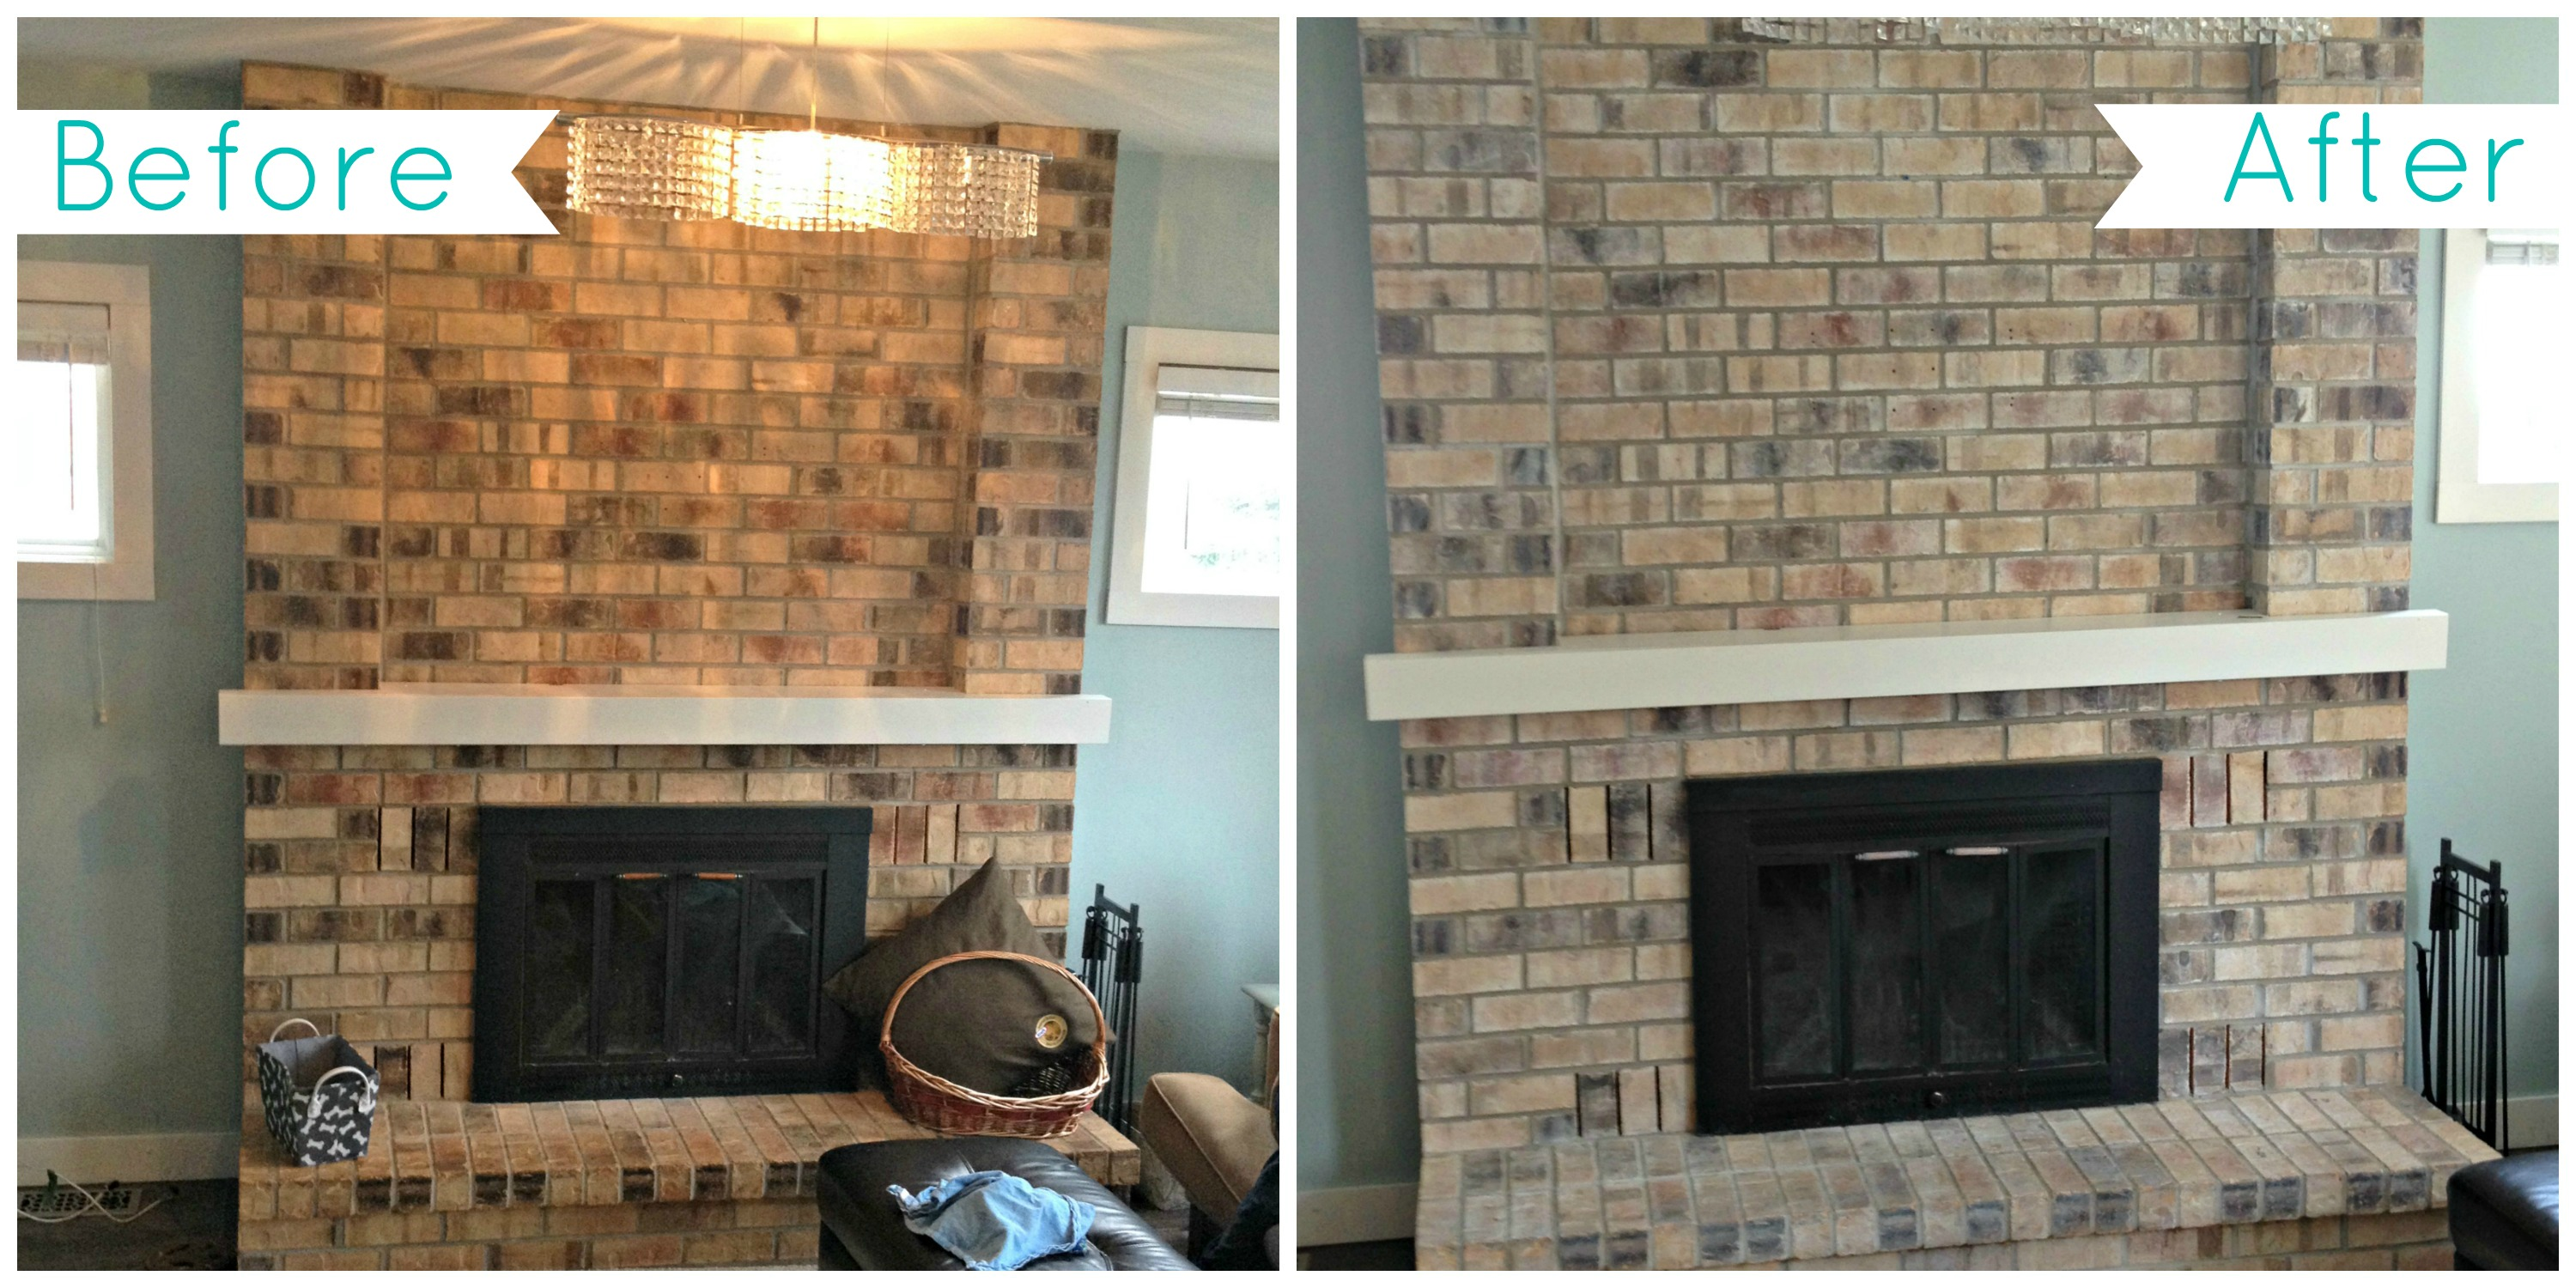 painted brick fireplace before and after fireplace design ideas. Black Bedroom Furniture Sets. Home Design Ideas